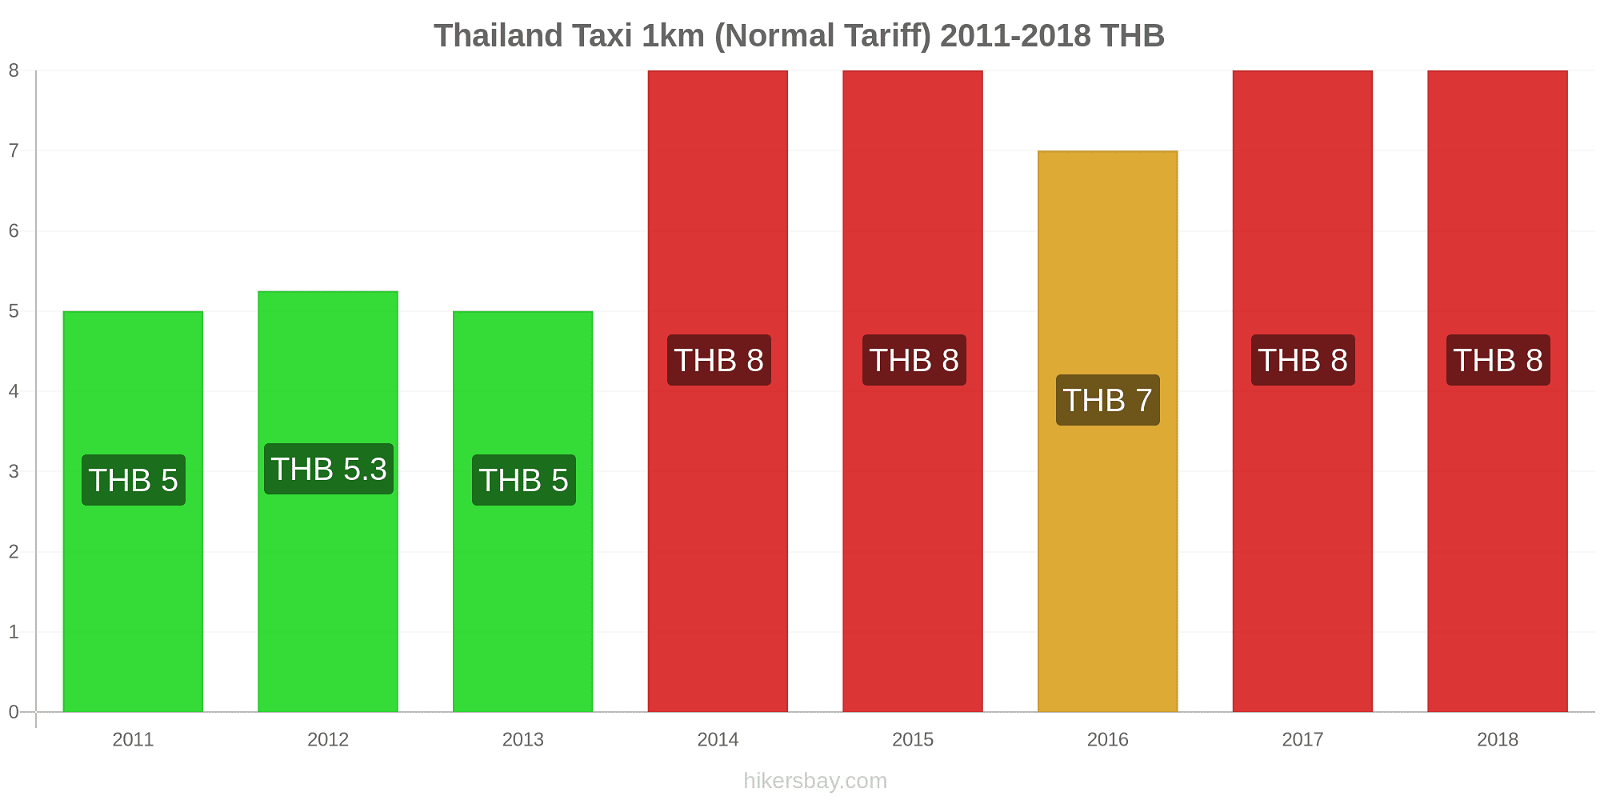 Thailand price changes Taxi 1km (Normal Tariff) hikersbay.com